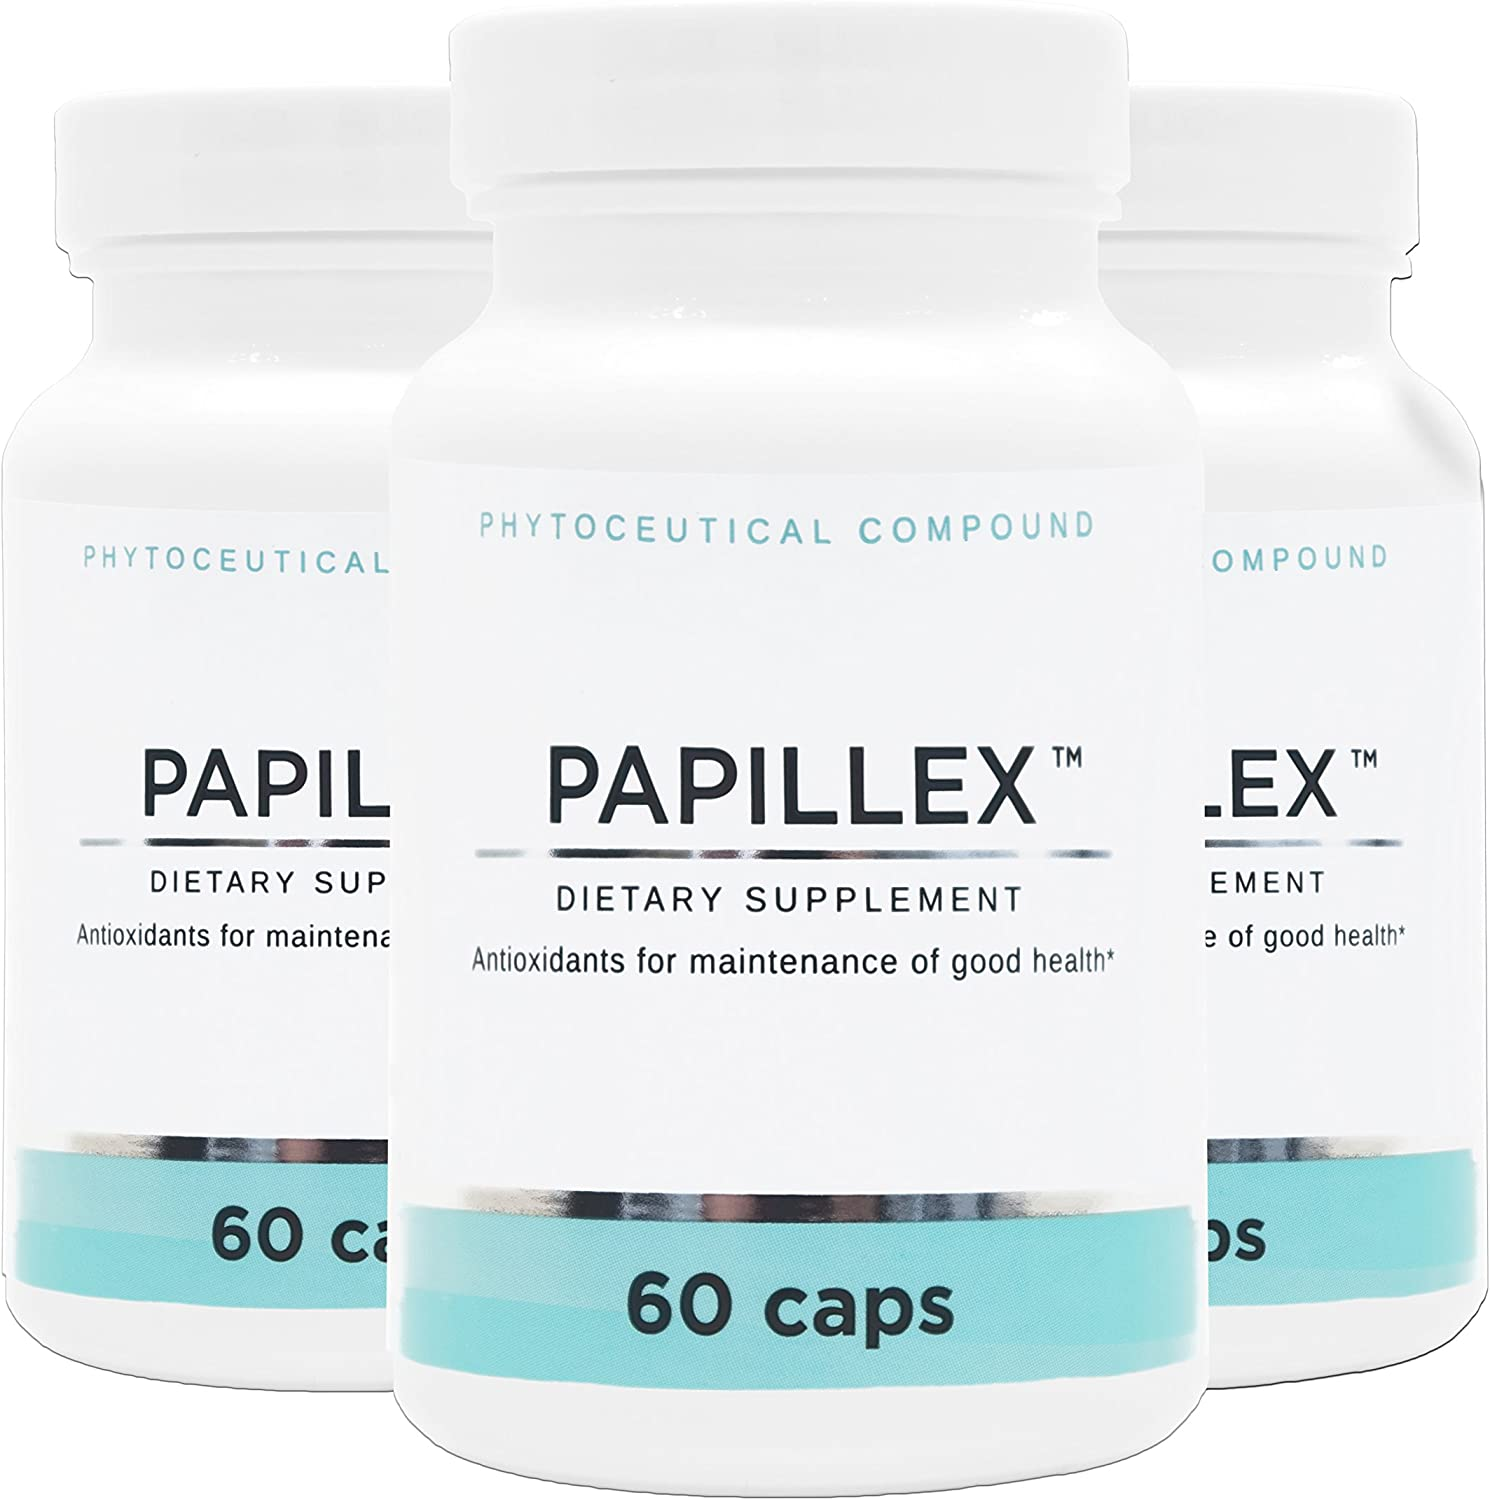 Hpv treatment supplements. Hpv natural supplement treatment